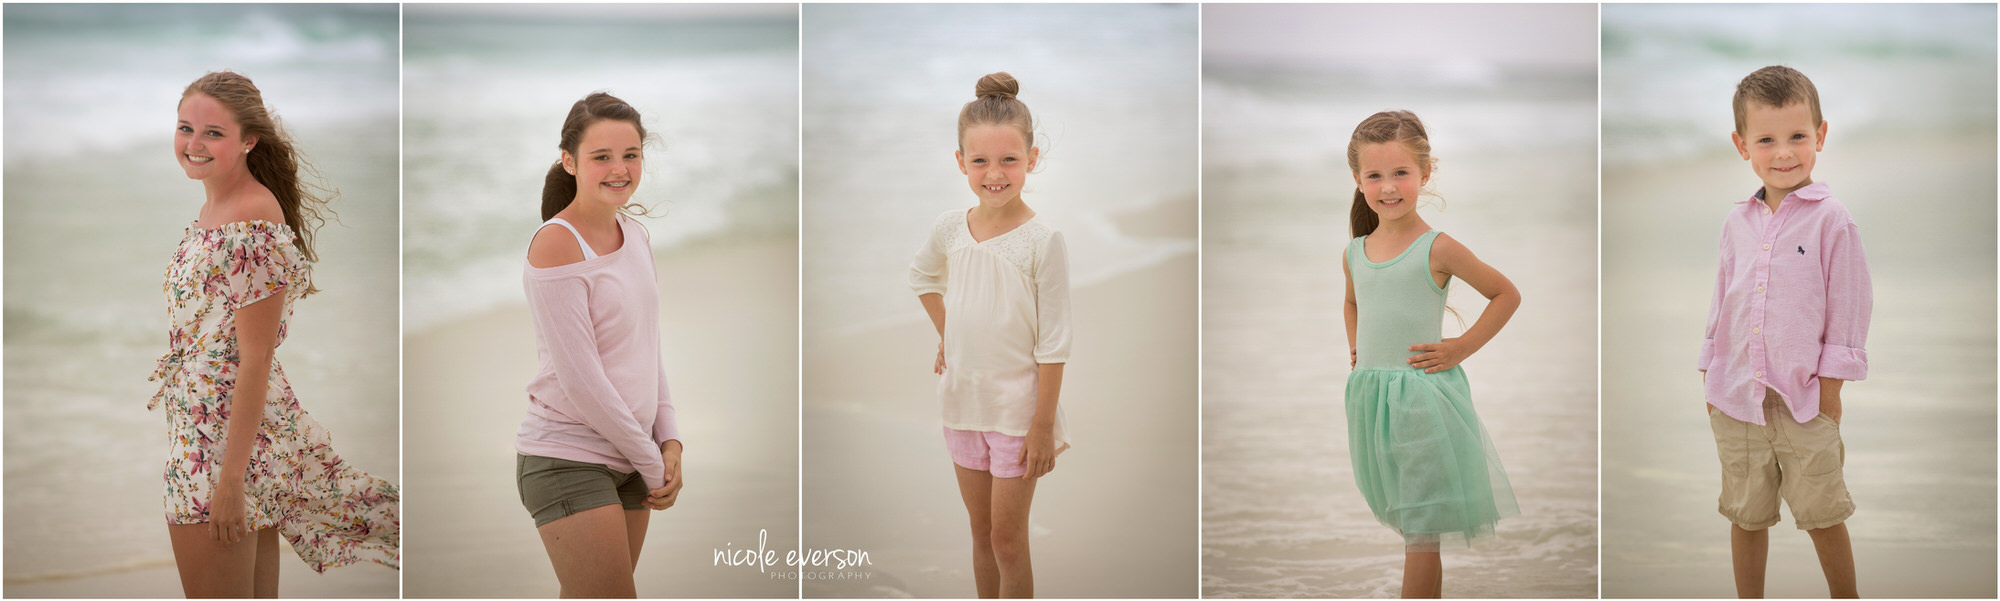 Destin Florida beach photography